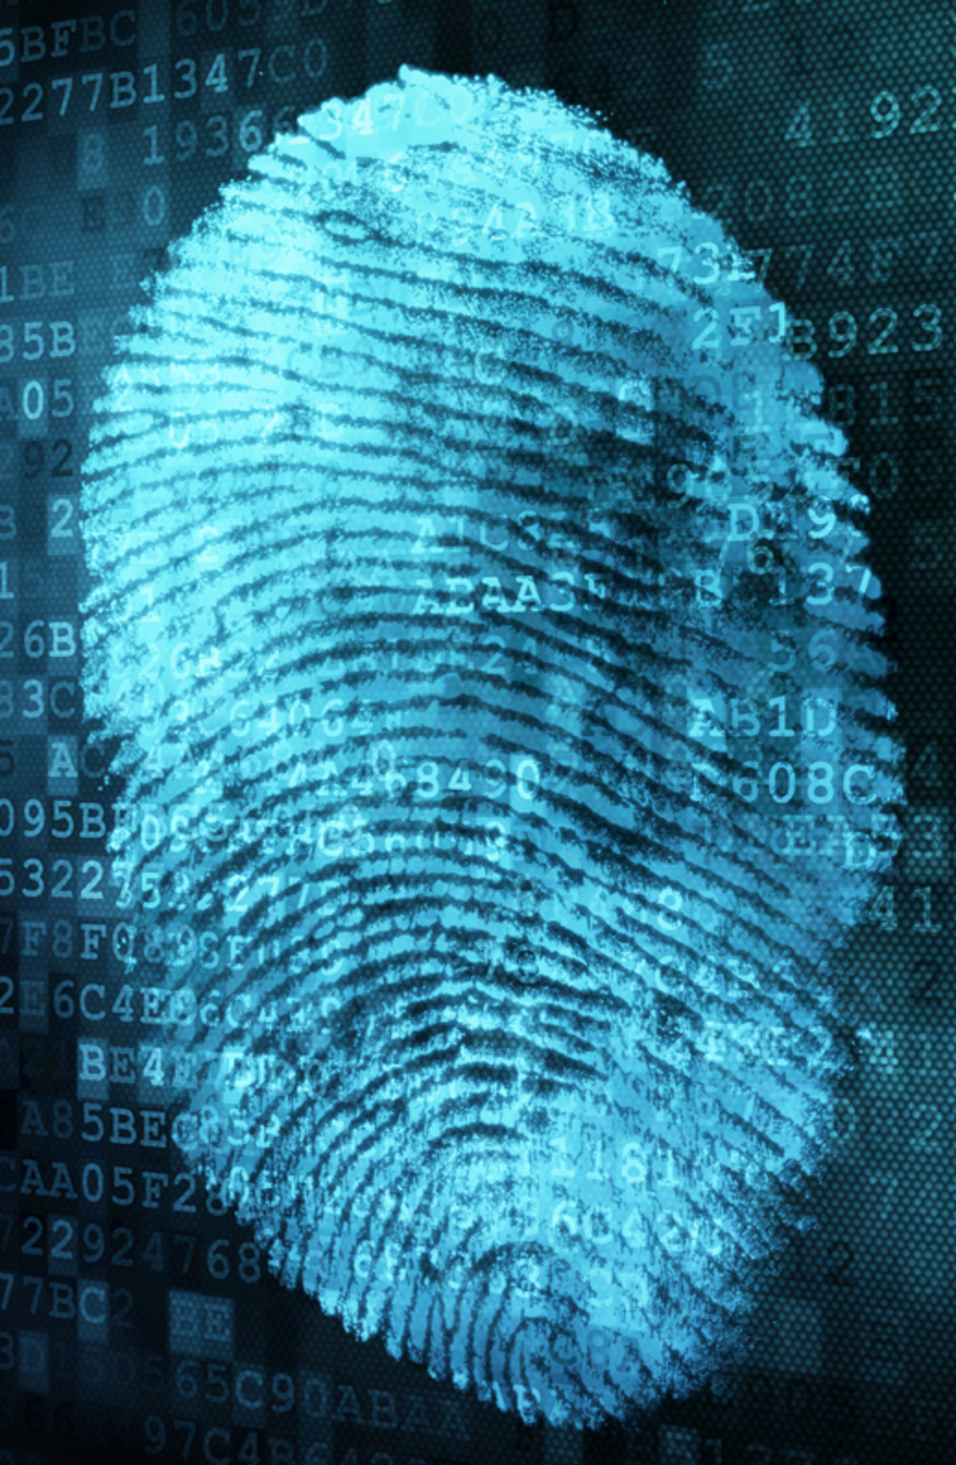 Is every human voice and fingerprint really unique?